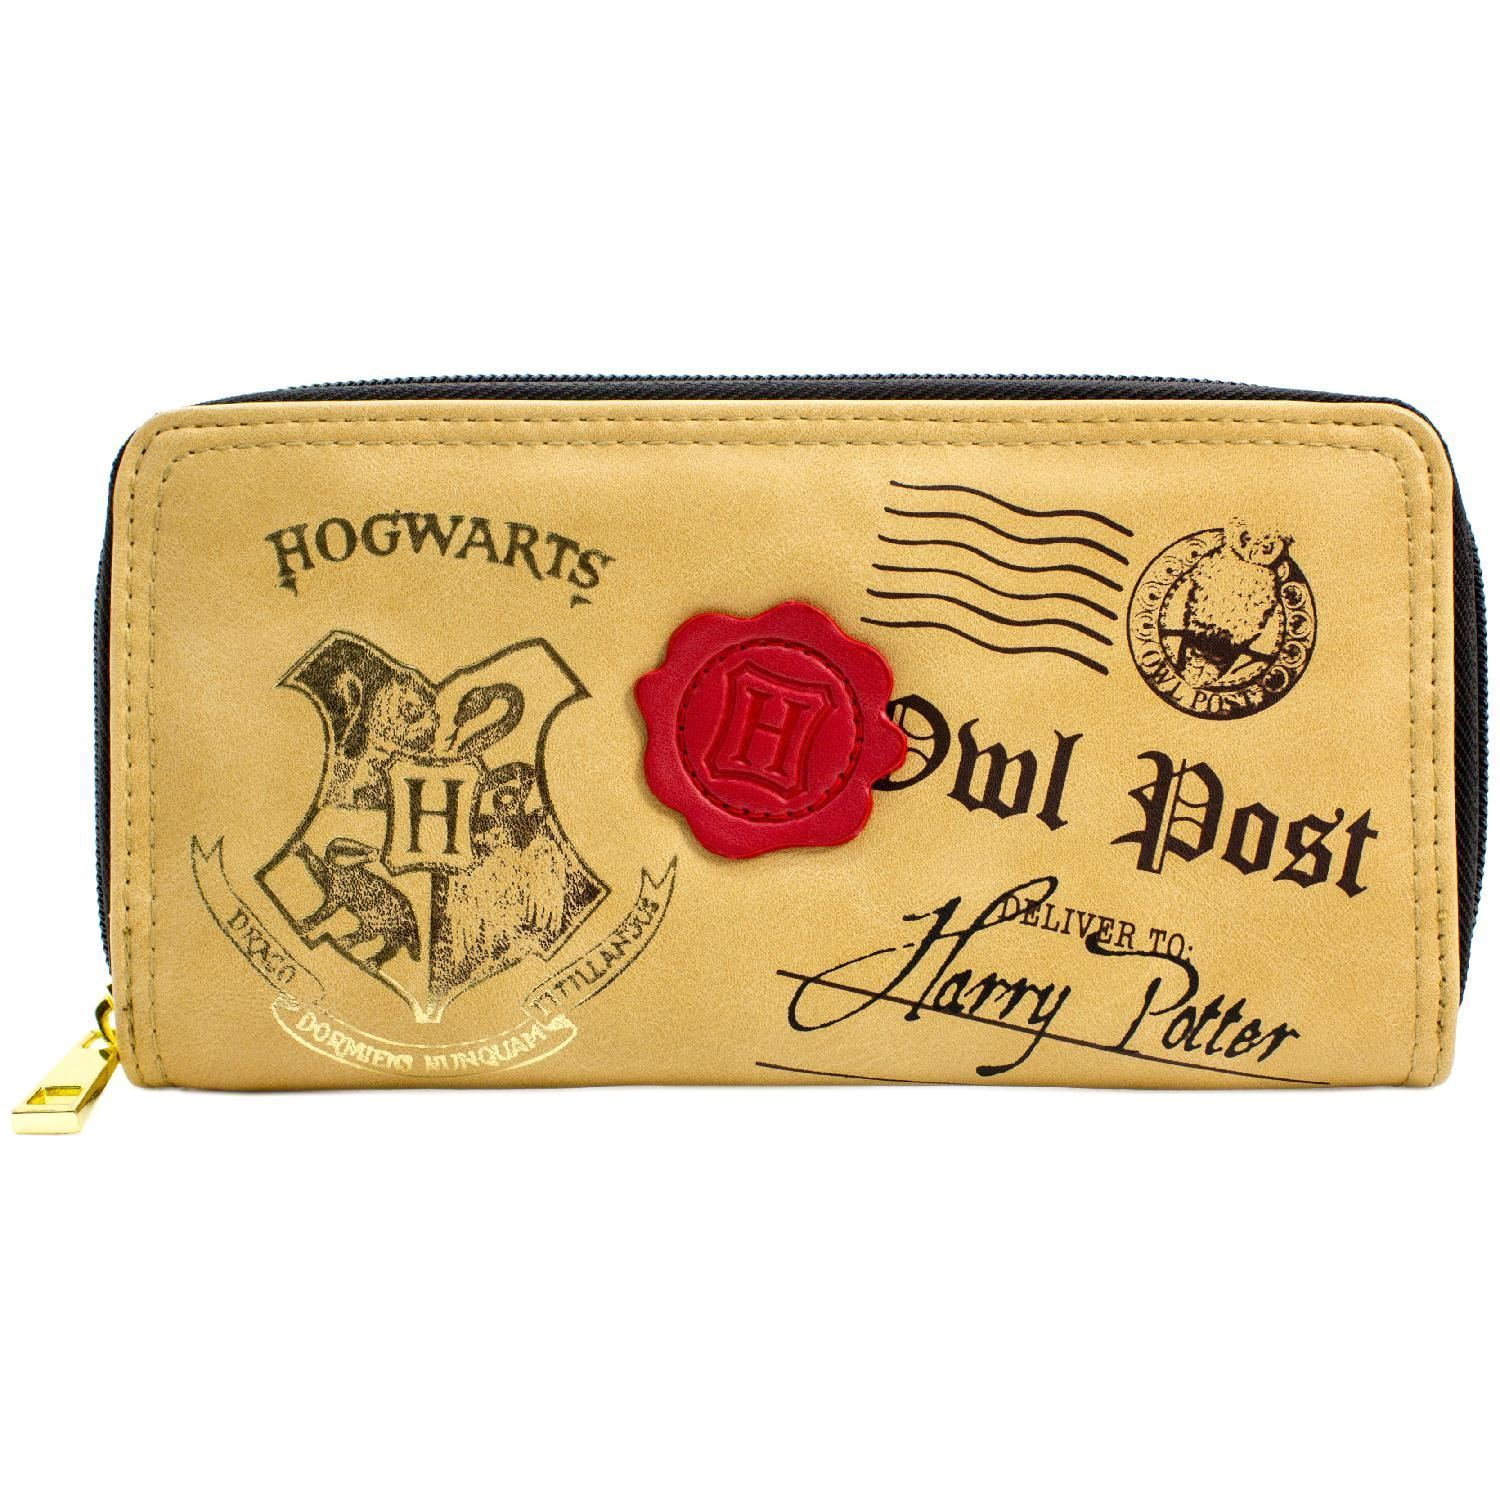 Official Harry Potter Hogwarts Owl Post Brown Coin & Card ...  Harry Potter Owl Service